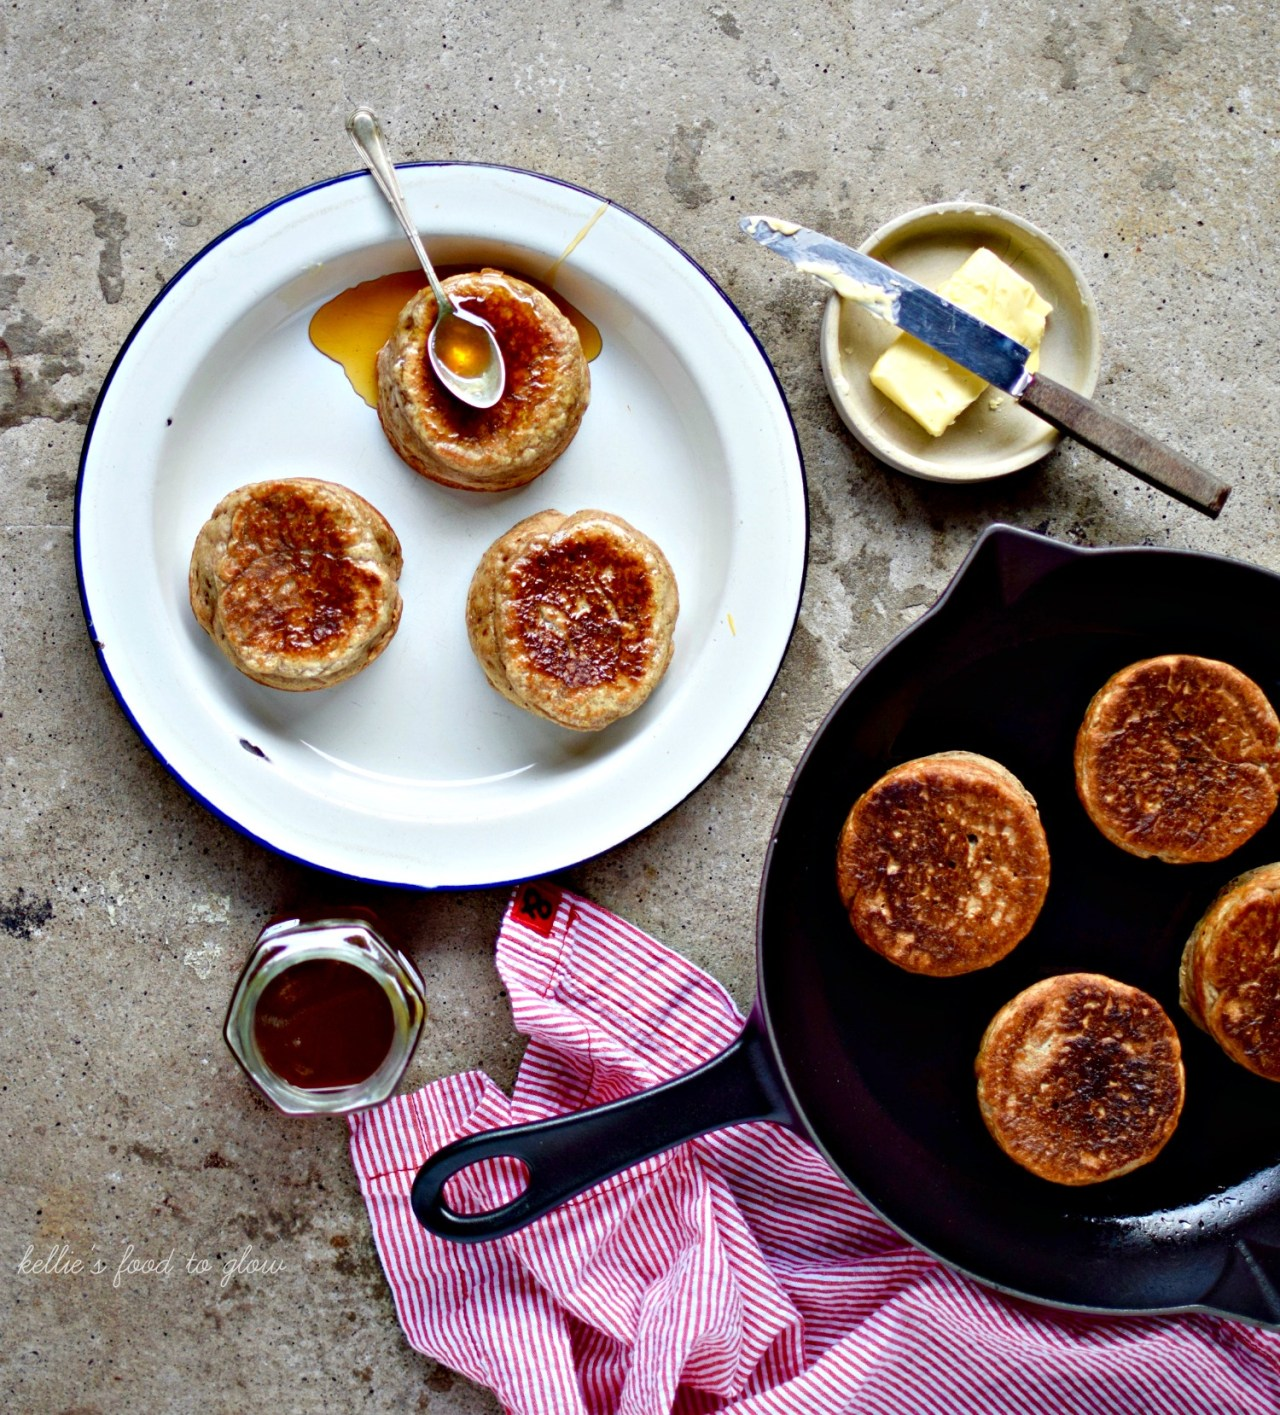 homemade cinnamon and rye crumpets are easier than you think! A super breakfast or comforting snack. kelliesfoodtoglow.com